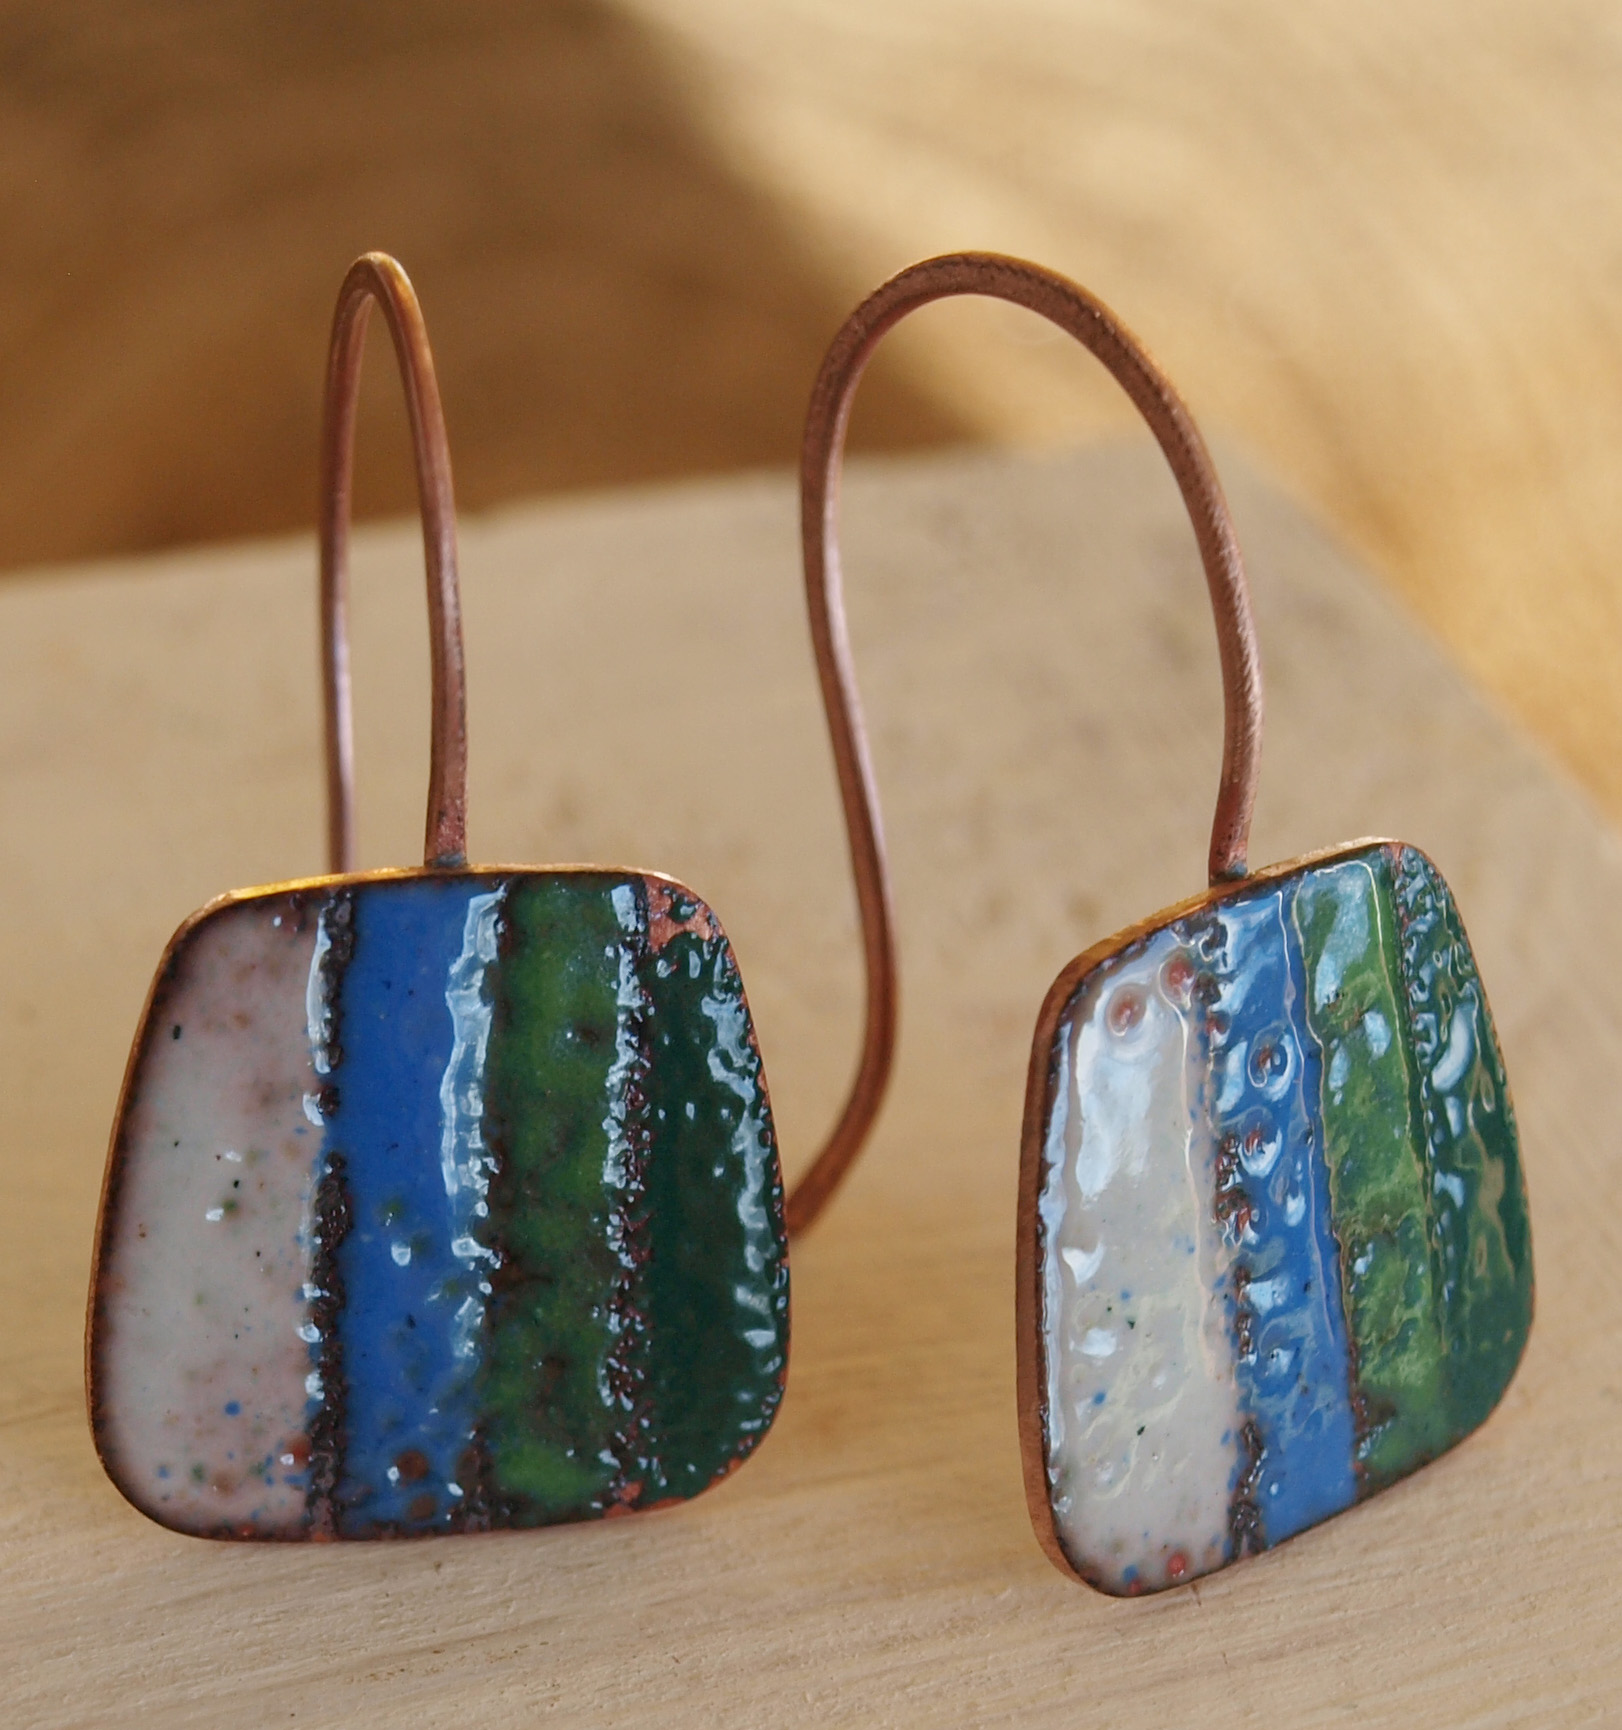 sugar product adjusted enamel dsc metal steede of cornflower blue image earrings sculpture kalaya jewlery